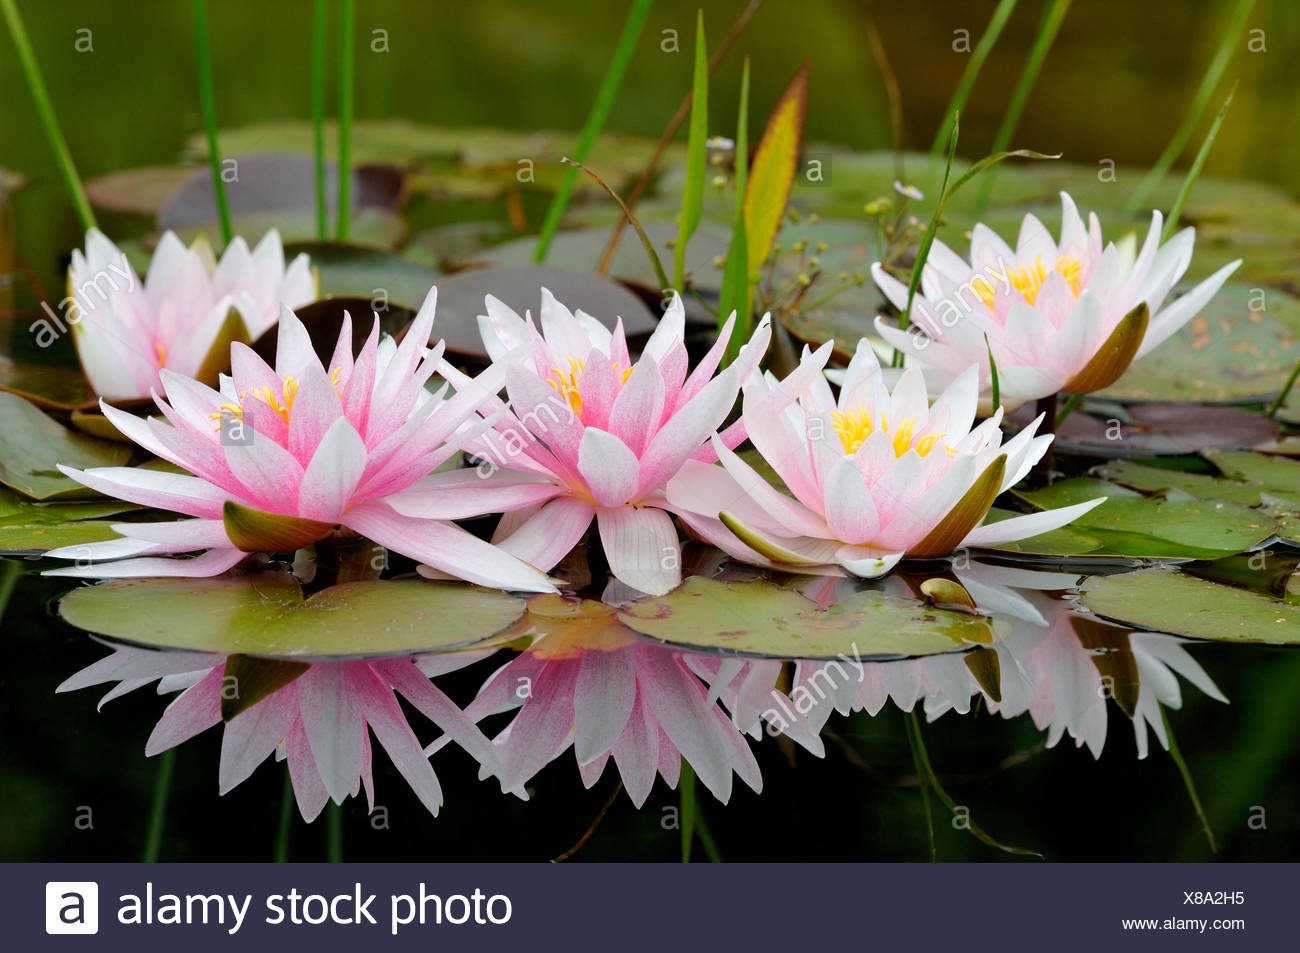 Pinky white water lilies (Nymphaea sp.) with reflection in the water, North Rhine-Westphalia, Germany - Stock Image